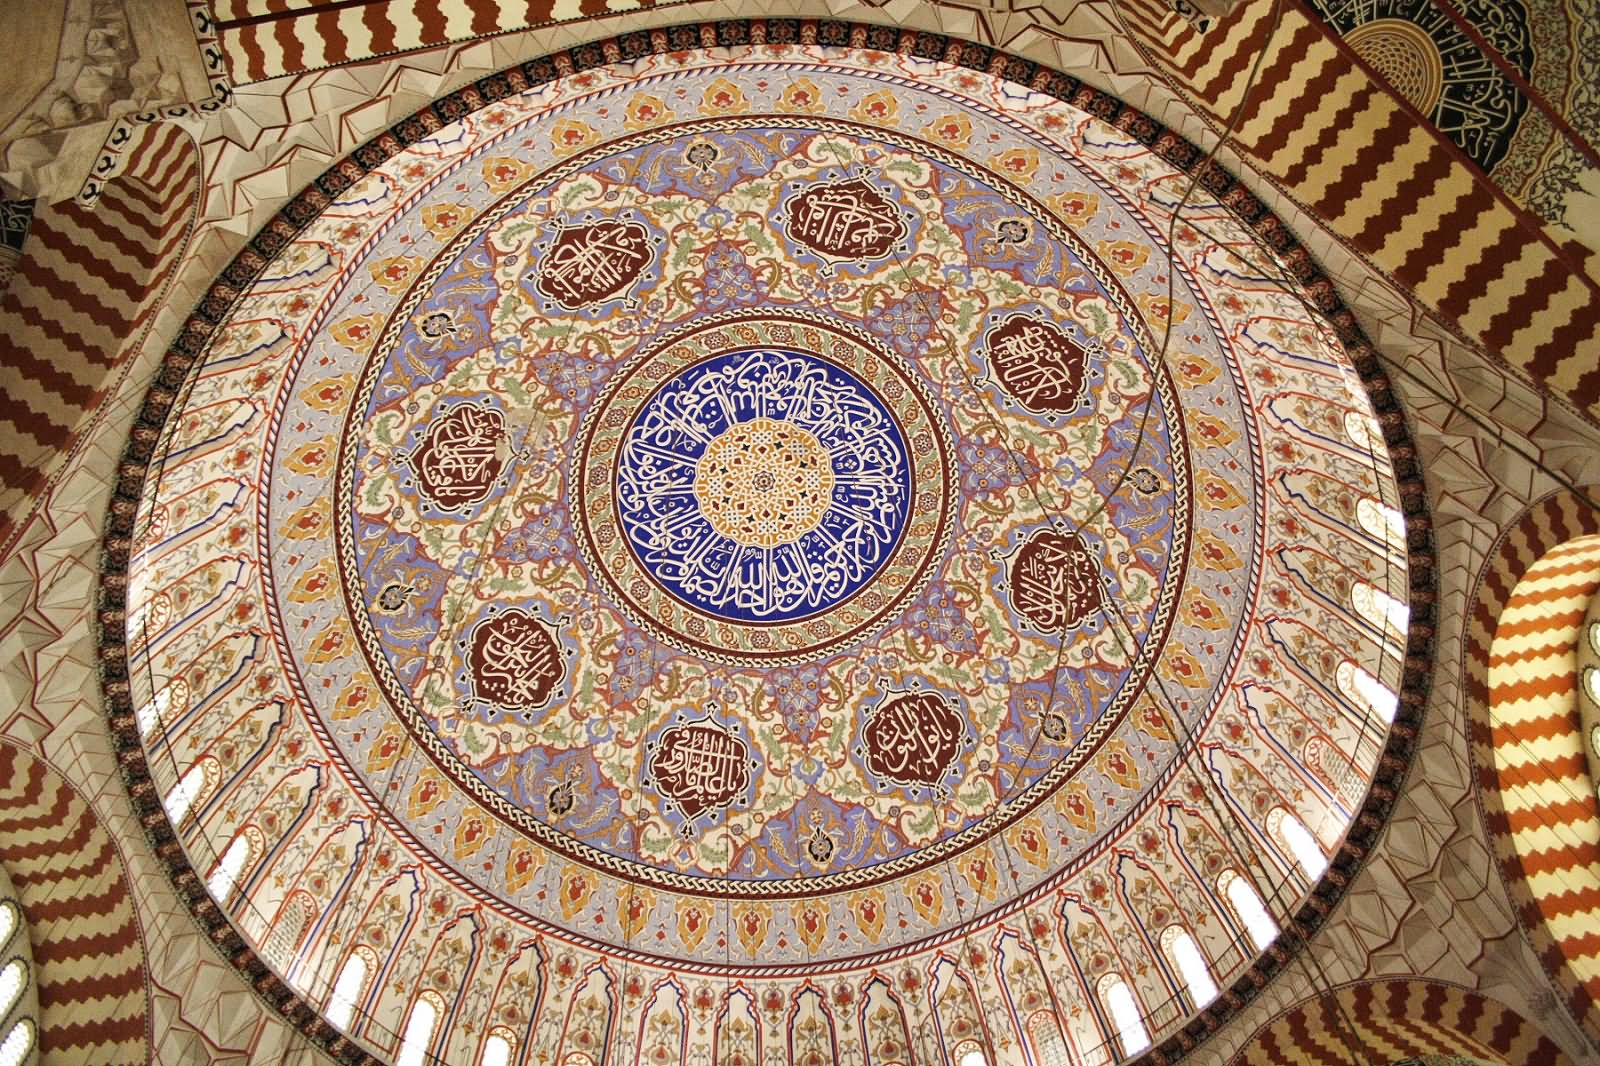 15 Incredible Interior View Pictures And Photos Of The Sehzada Mosque In Istanbul